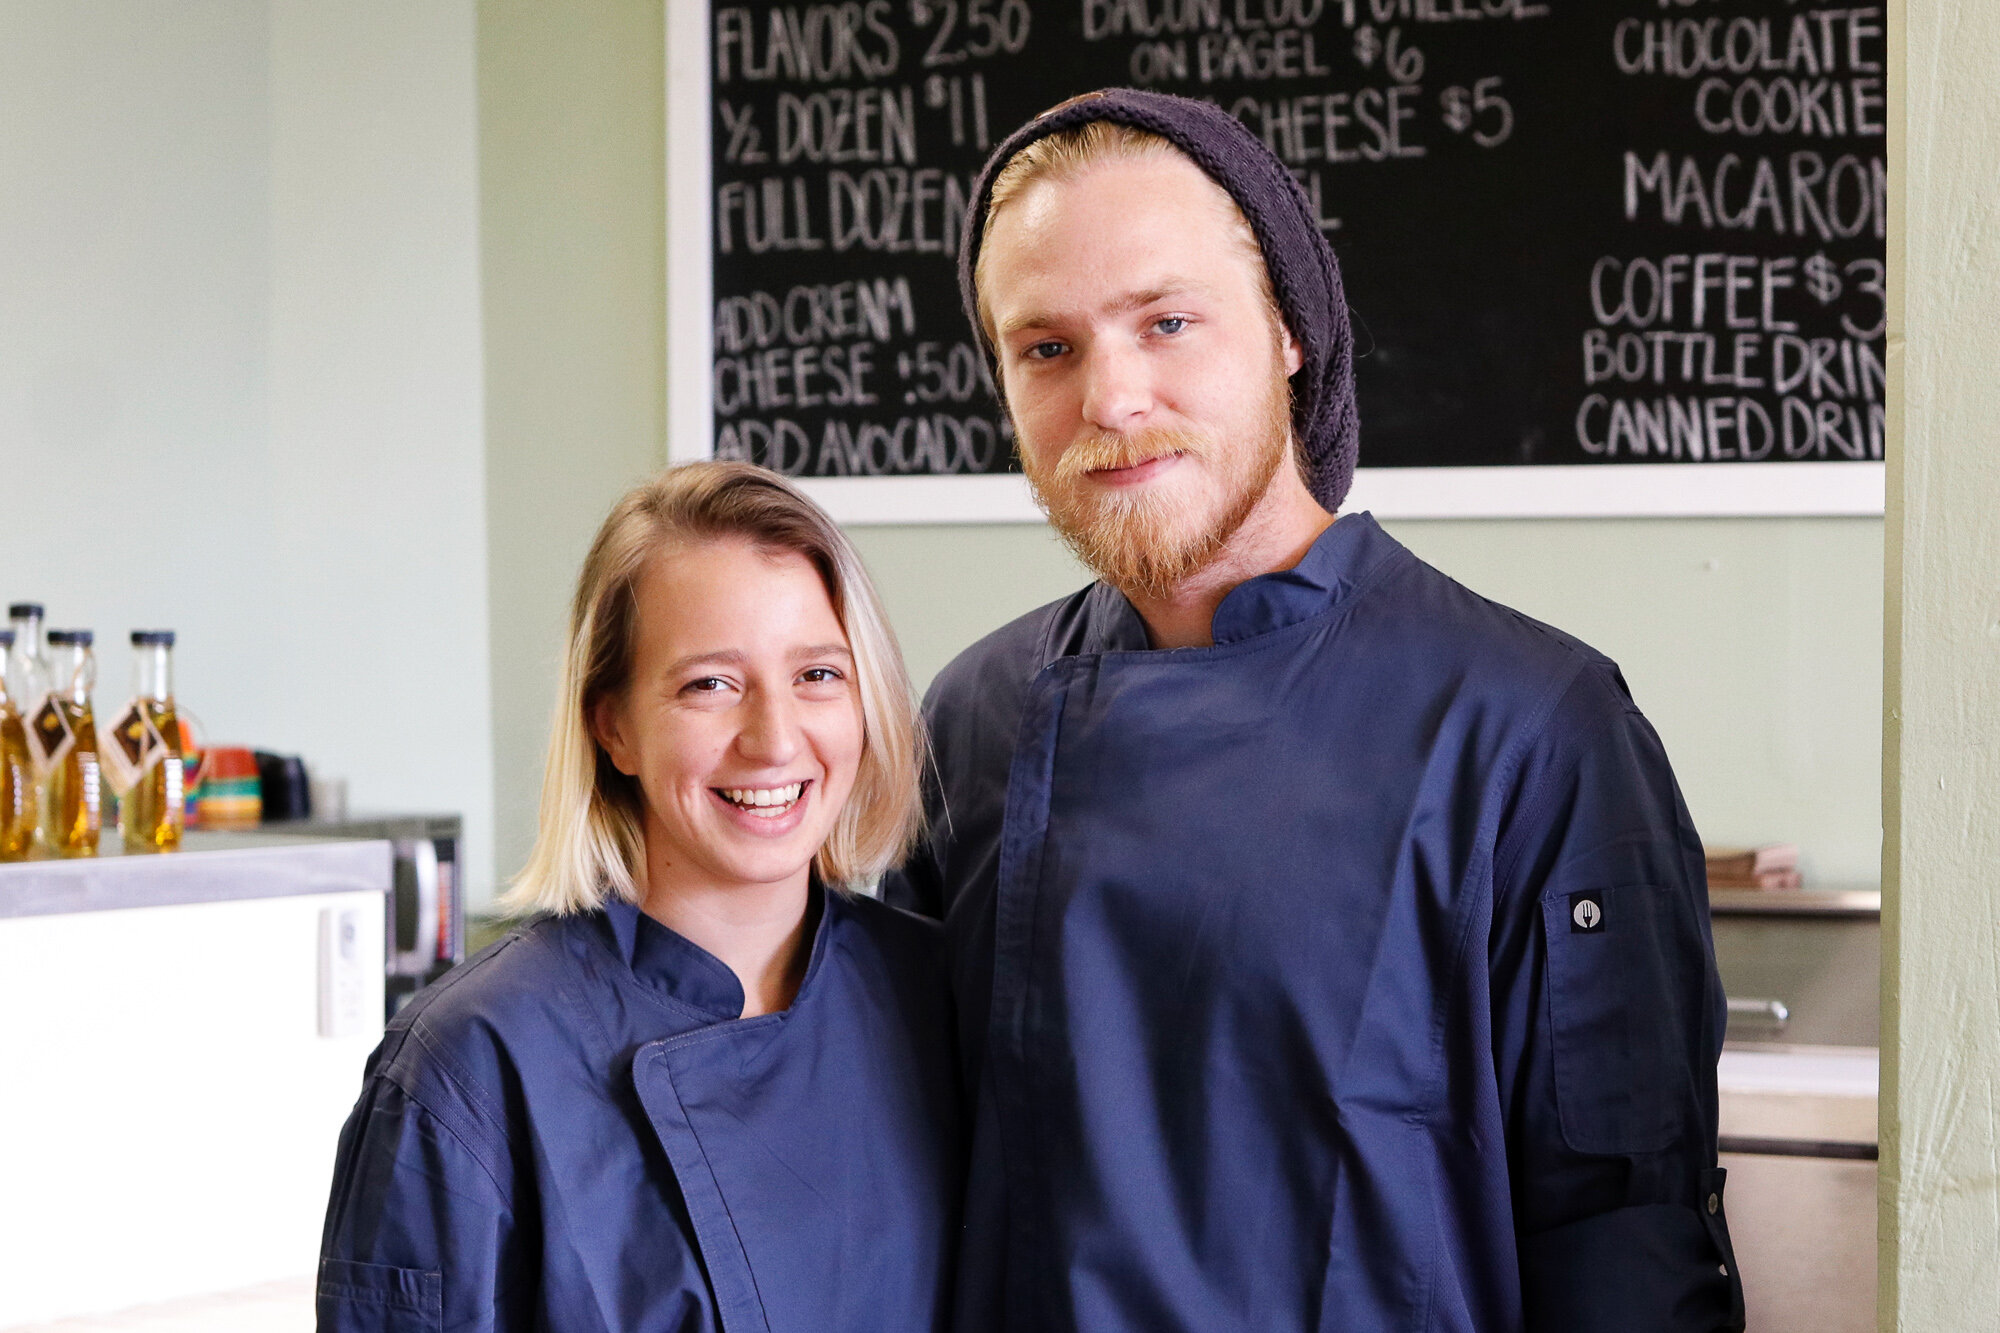 Owners Meg and Alex at Alchemy Bagel Cafe